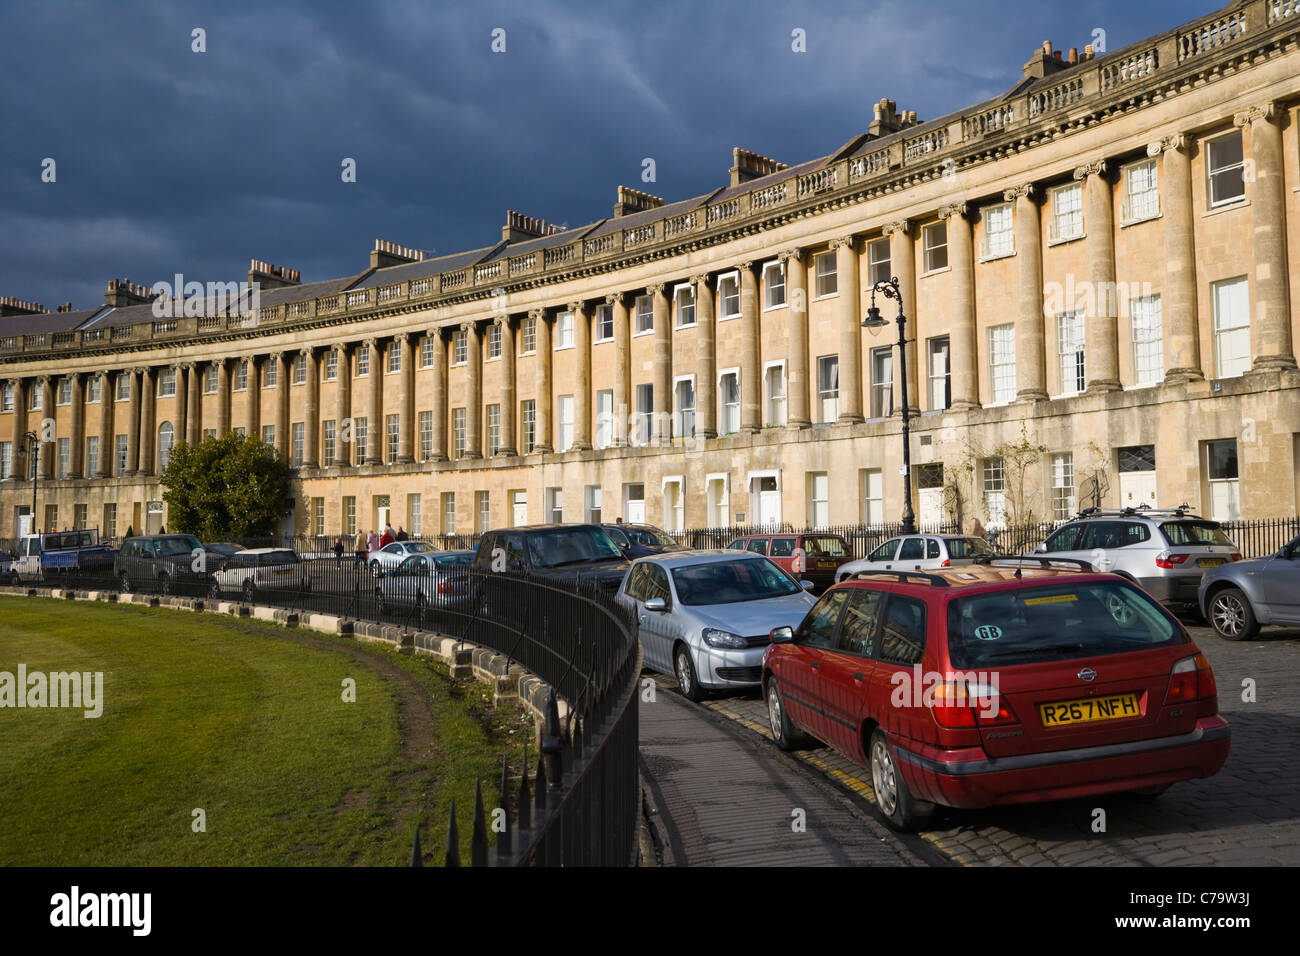 Royal Crescent by John Wood The Younger, Bath, Somerset, England, UK - Stock Image